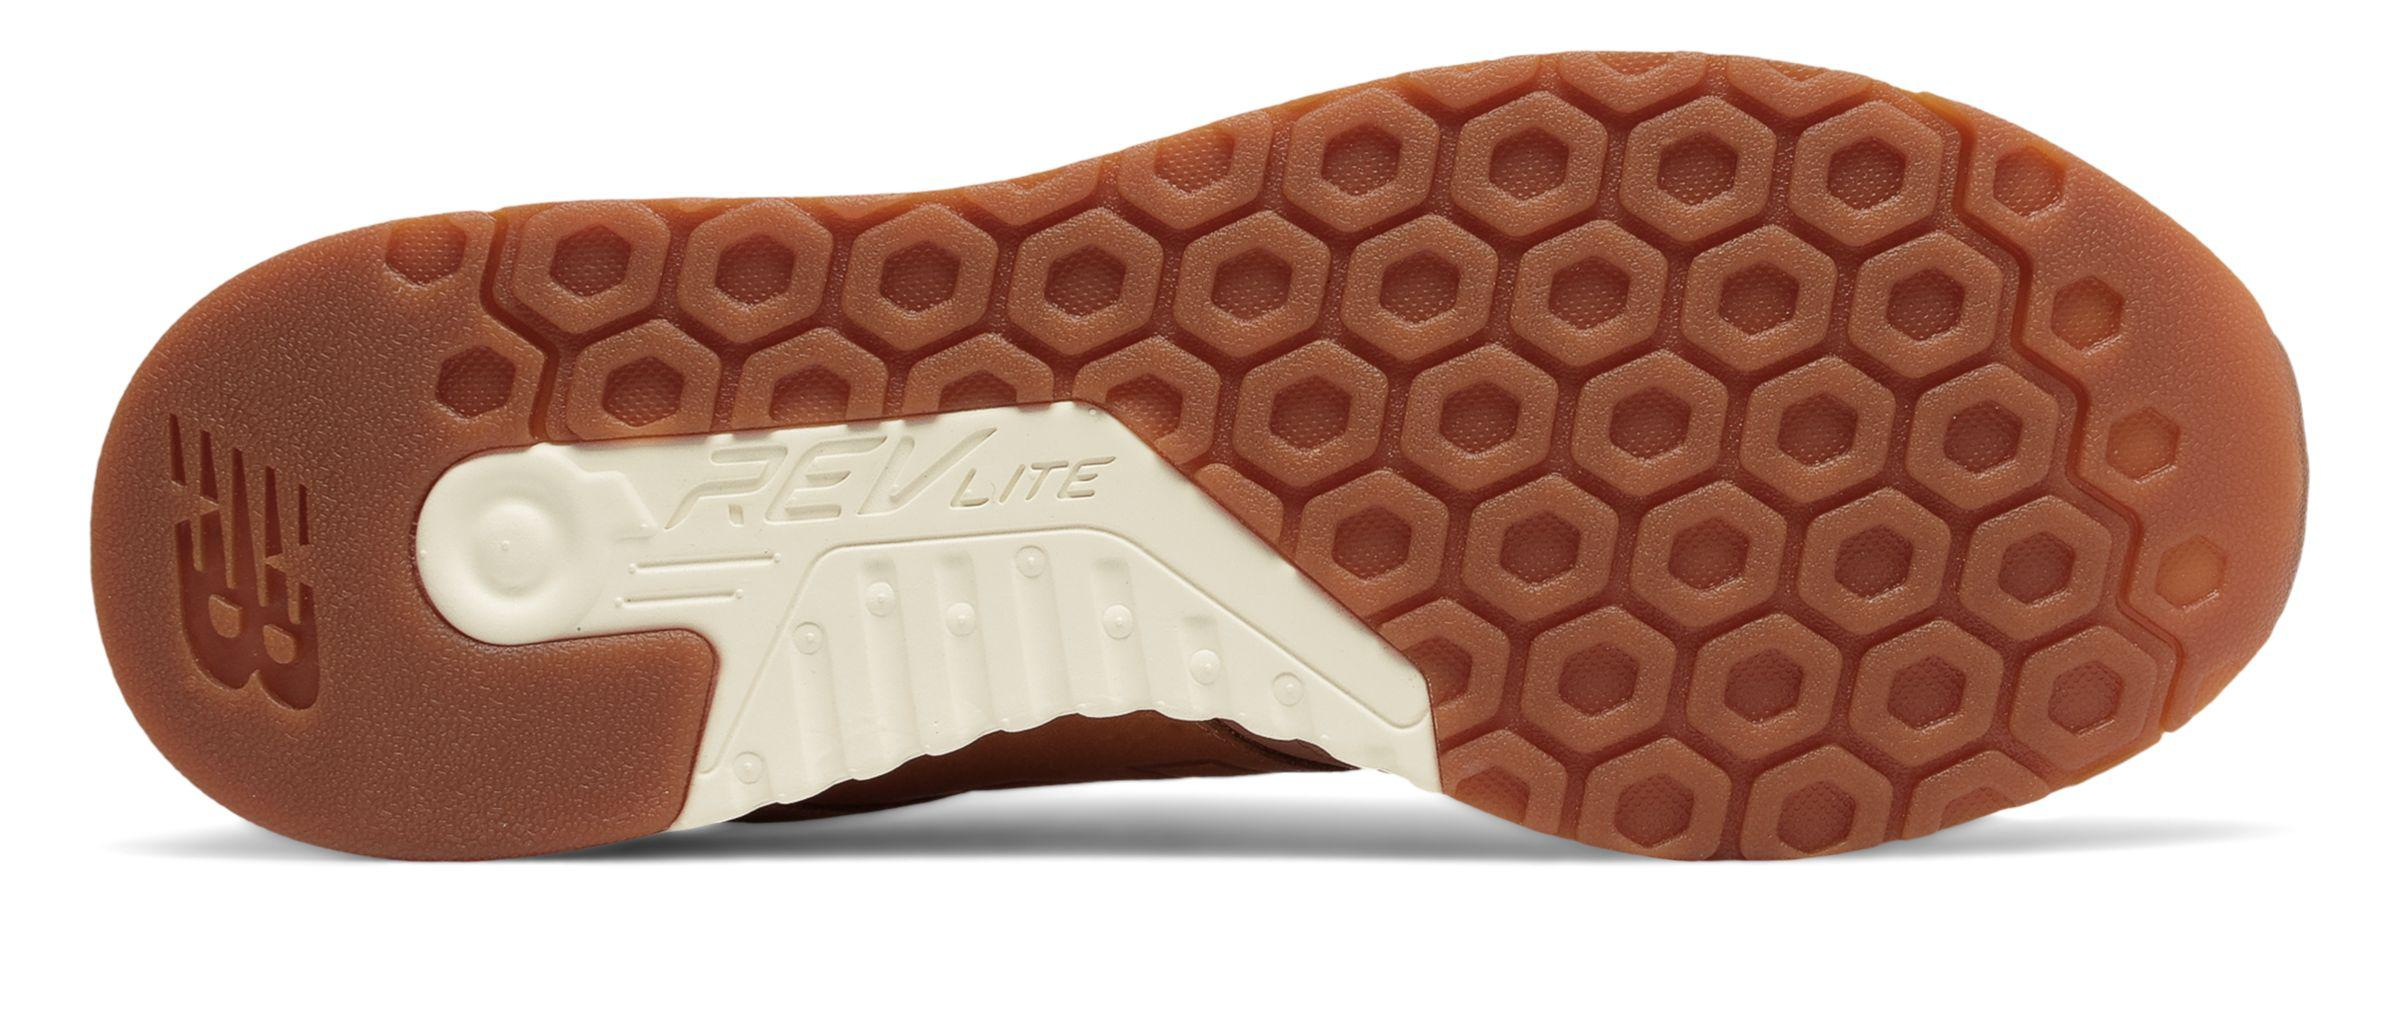 New Balance Leather 247 Luxe in Brown for Men - Lyst